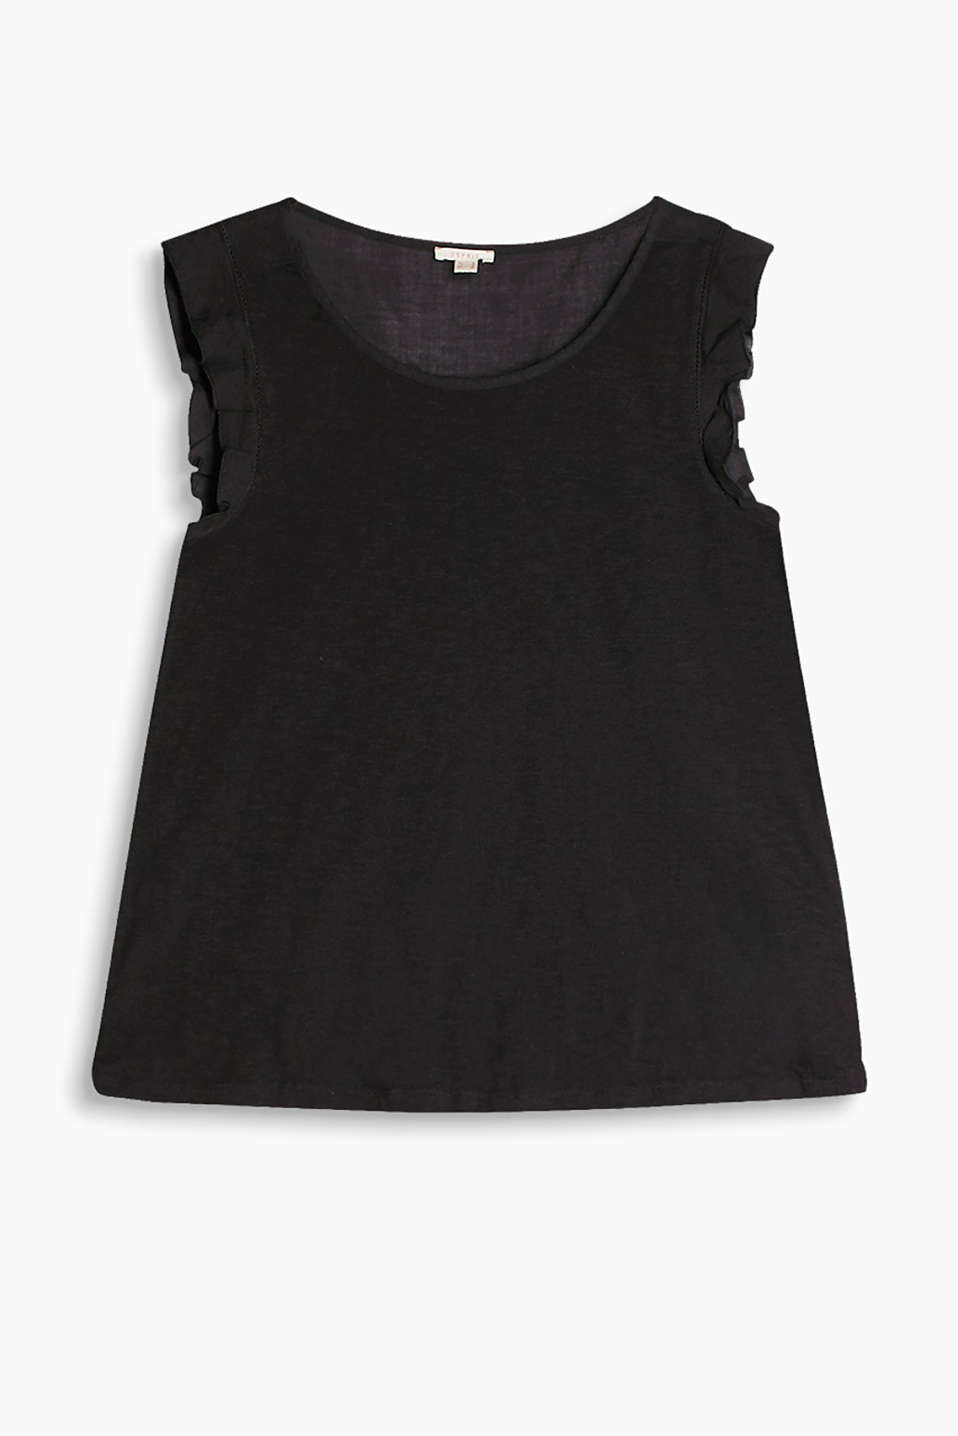 Slub tank top in 100% cotton with beautifully shaped cap sleeves in a figure-flattering A-line design